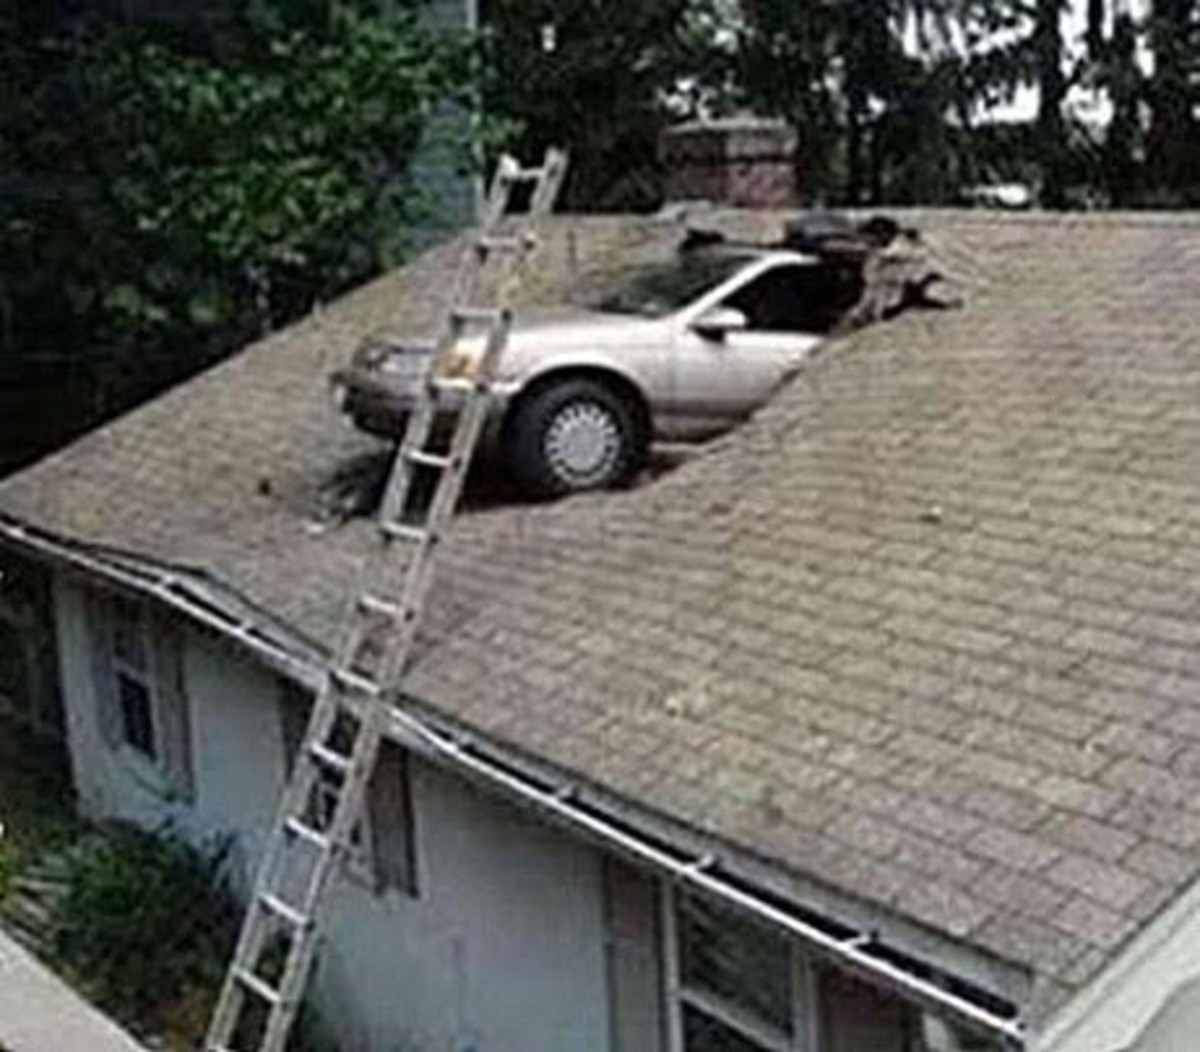 Why did they put this car in the attic in the first place?